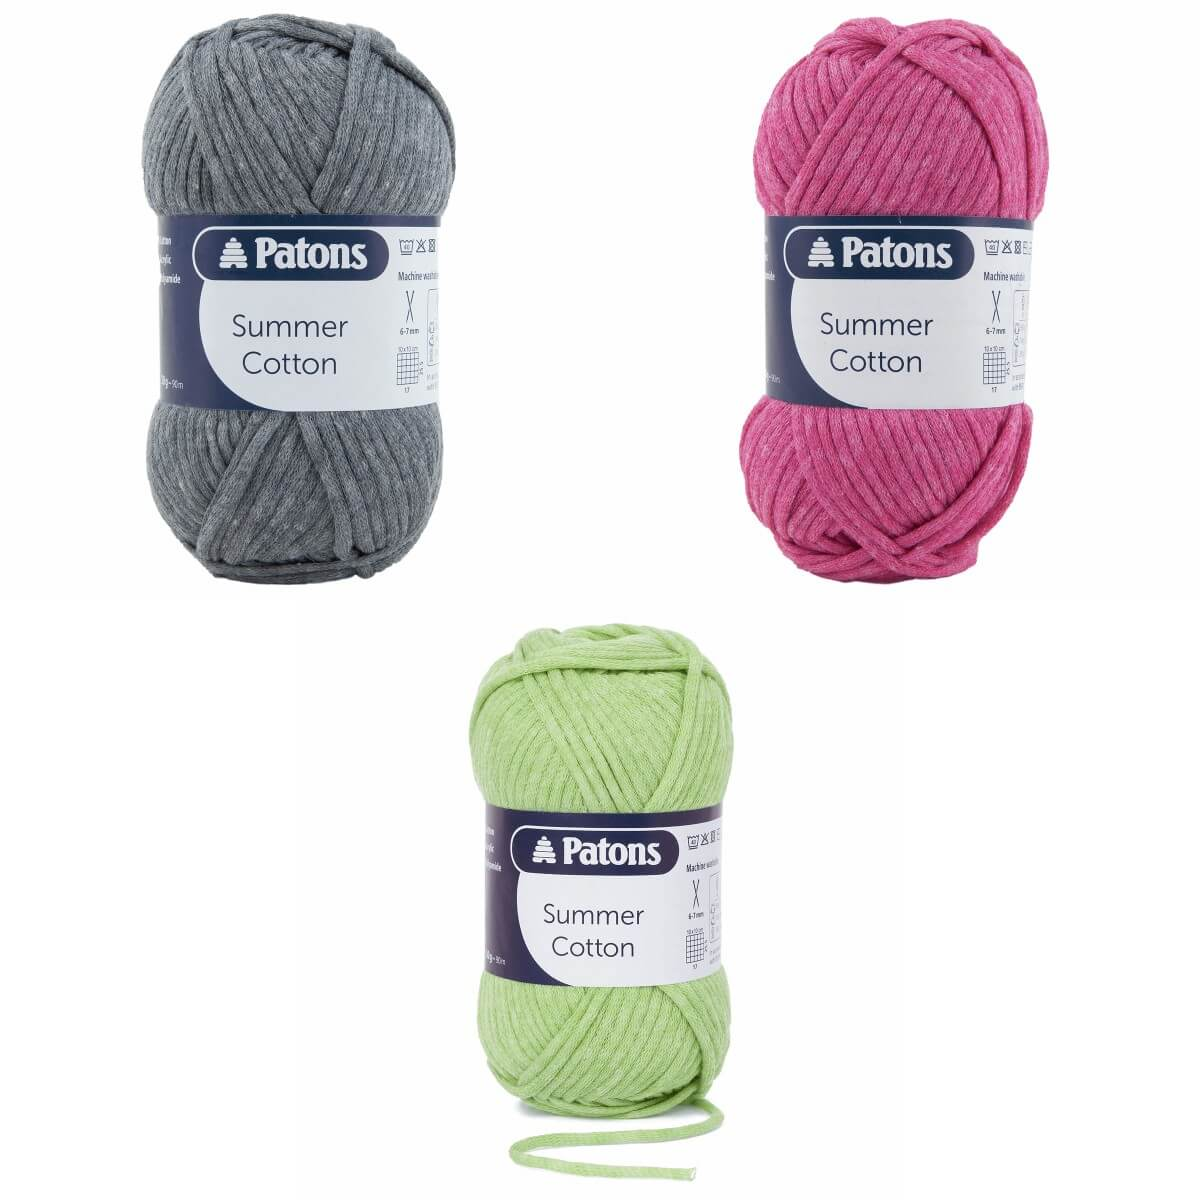 0071 Peridot Patons Summer Cotton Aran Yarn Knitting Crochet Easy Care 50g Ball